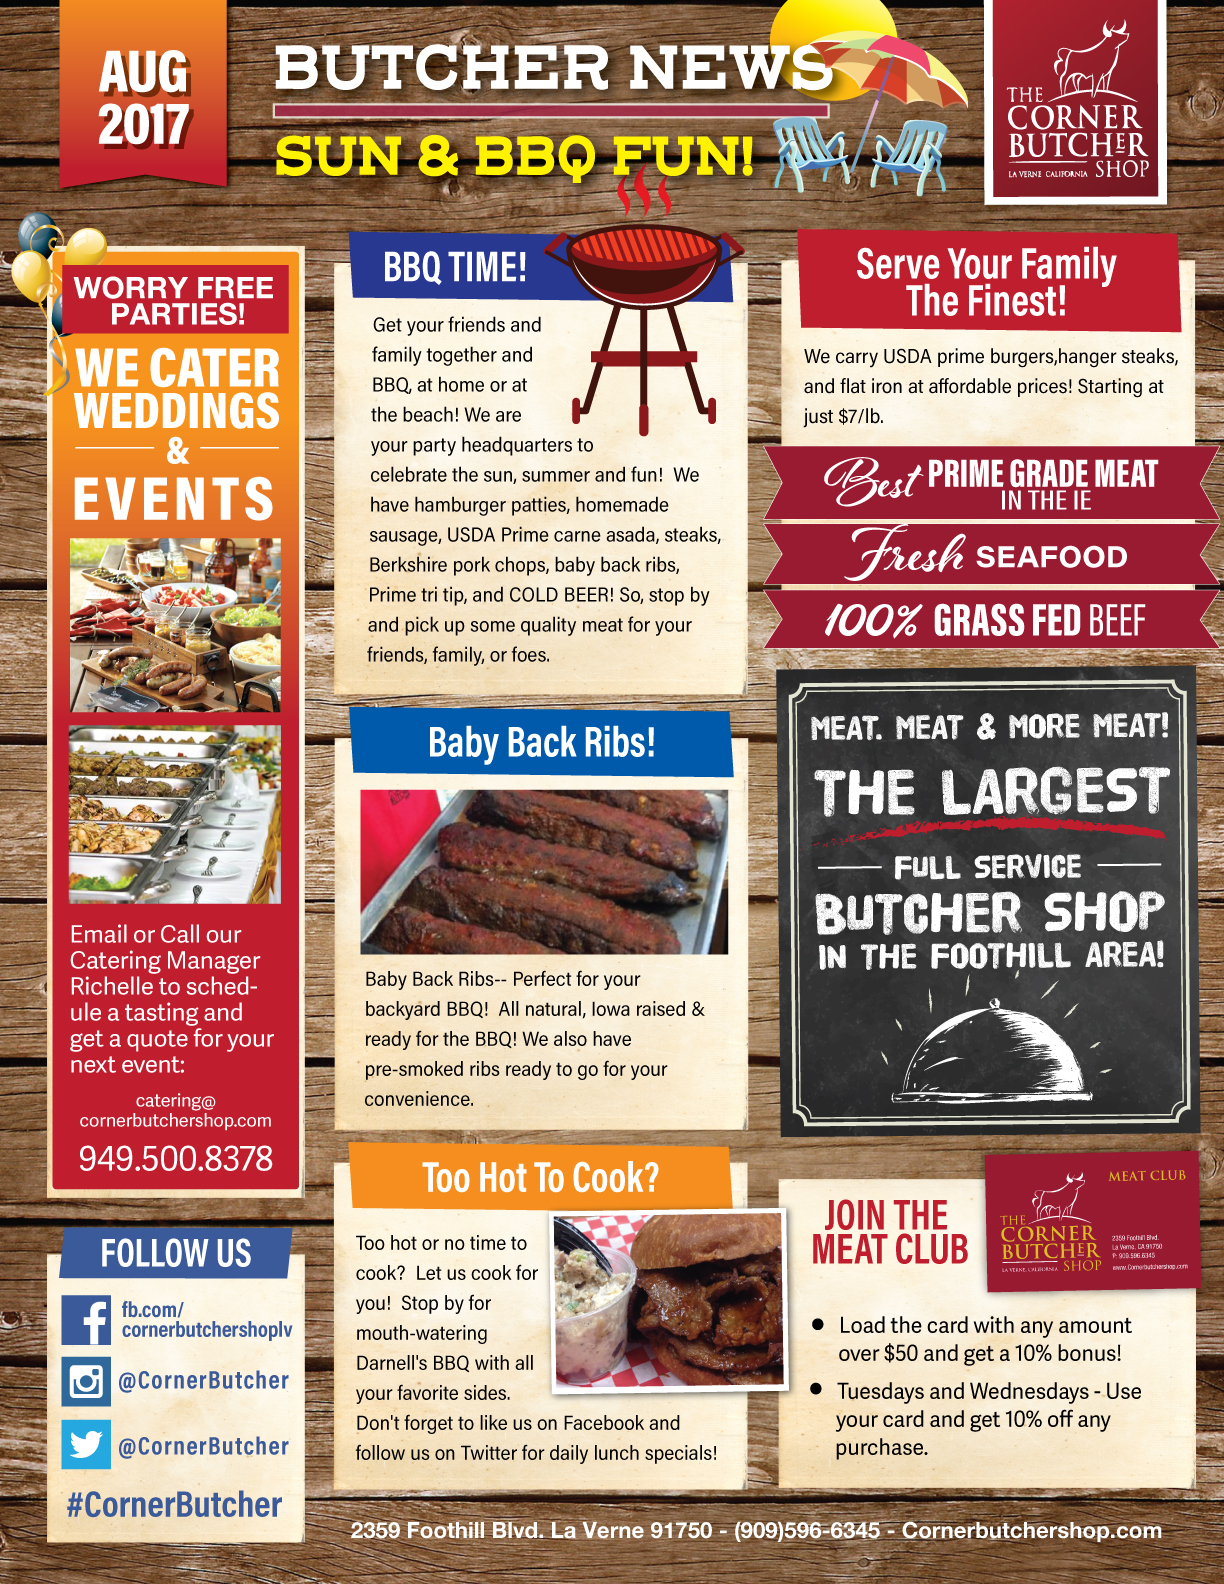 the corner butcher shop local loyalty rewards inland empire 39 s source for local coupons and. Black Bedroom Furniture Sets. Home Design Ideas